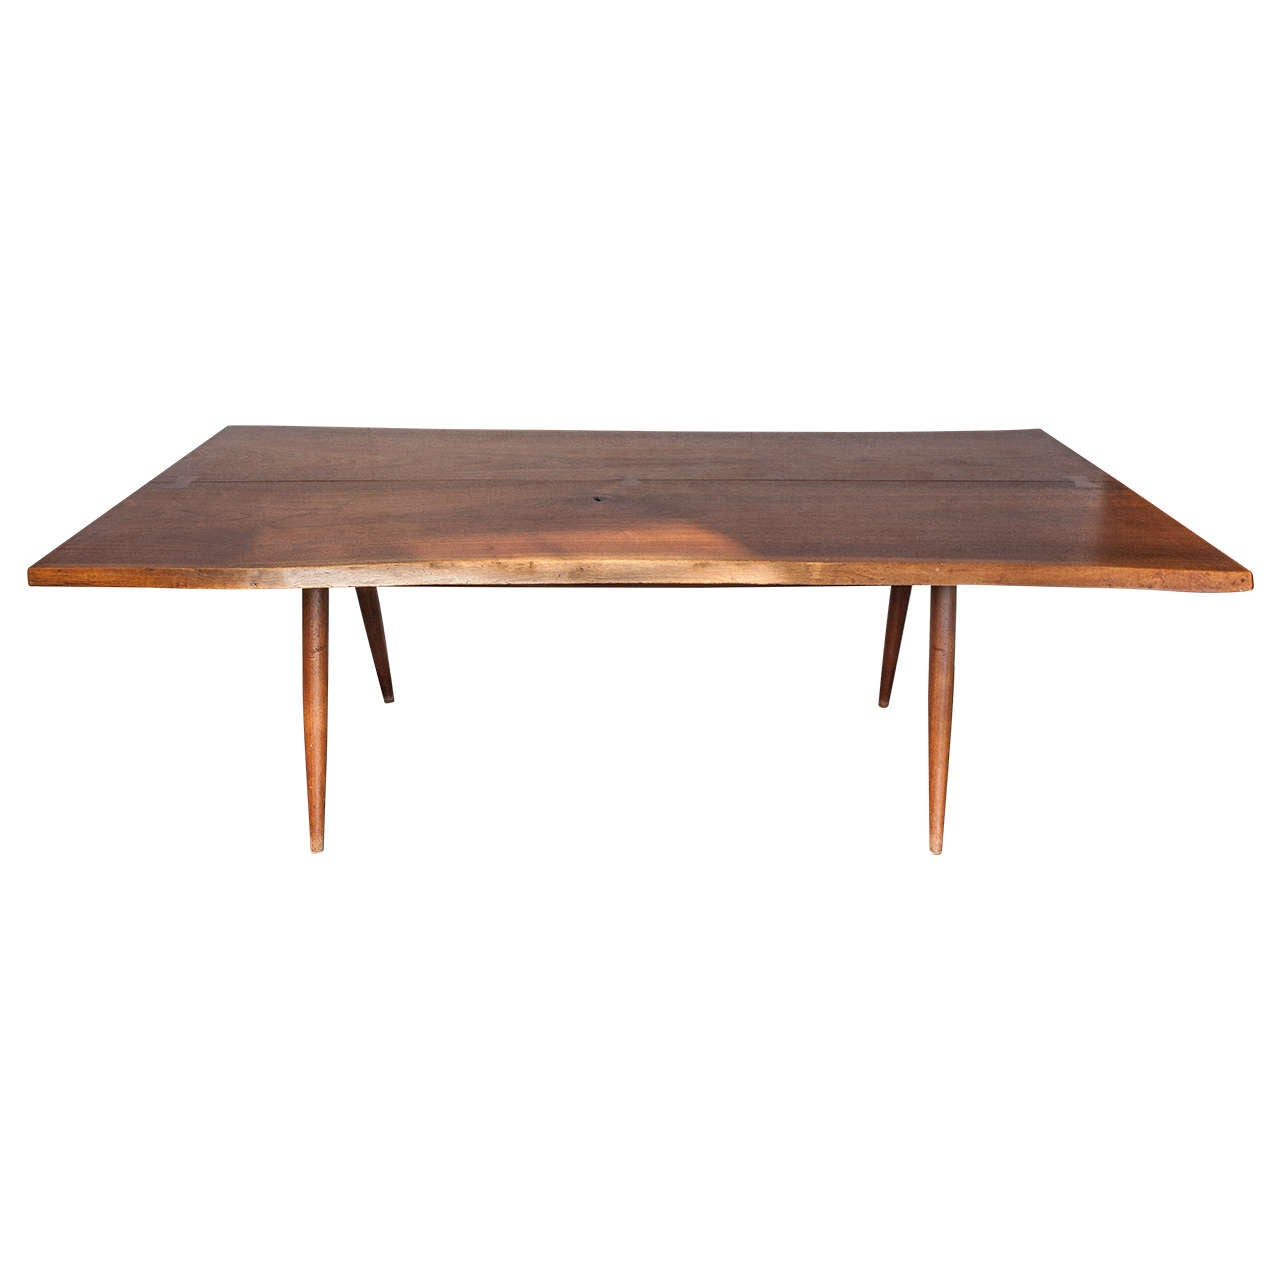 Nakashima Table george nakashima tables - 11 for sale at 1stdibs